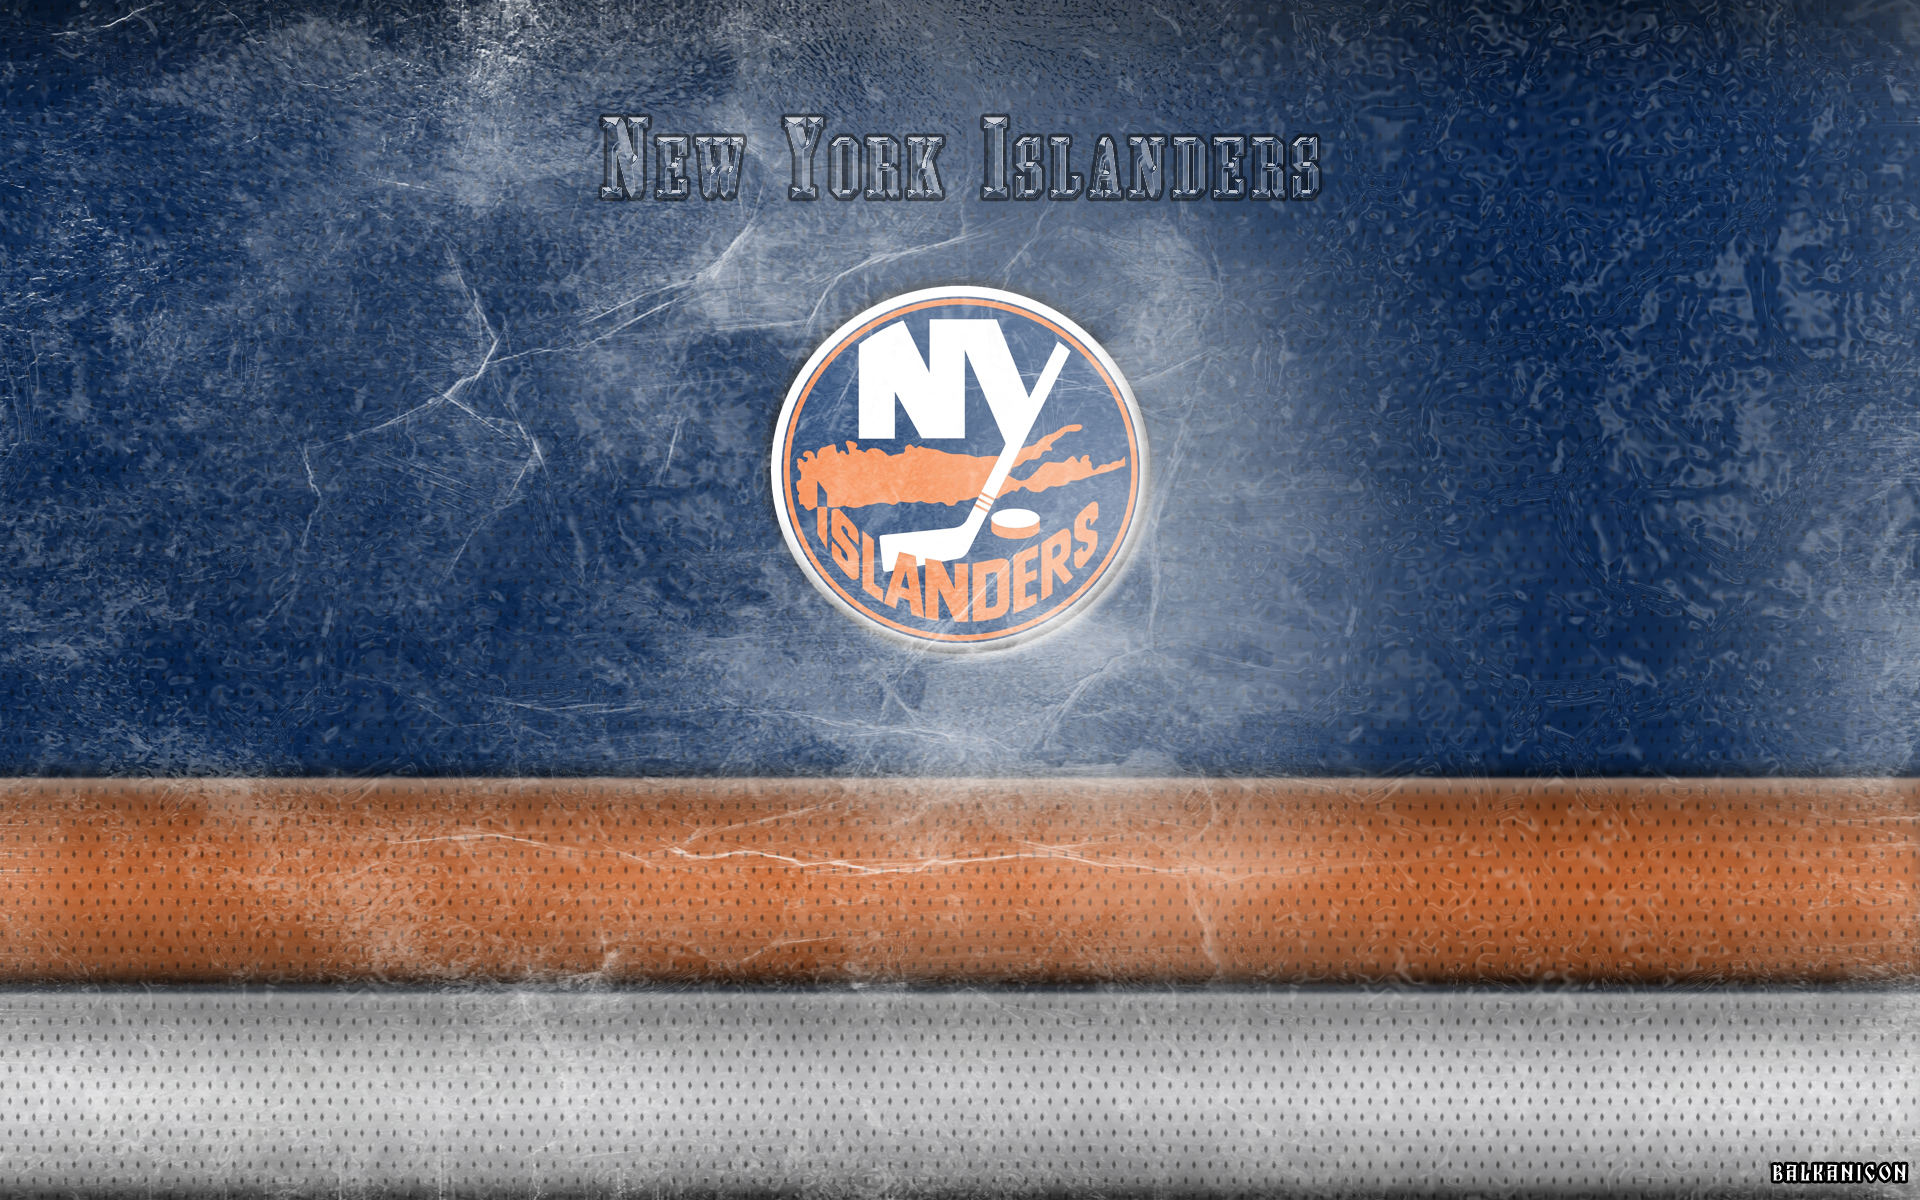 New York Islanders Wallpaper By Balkanicon